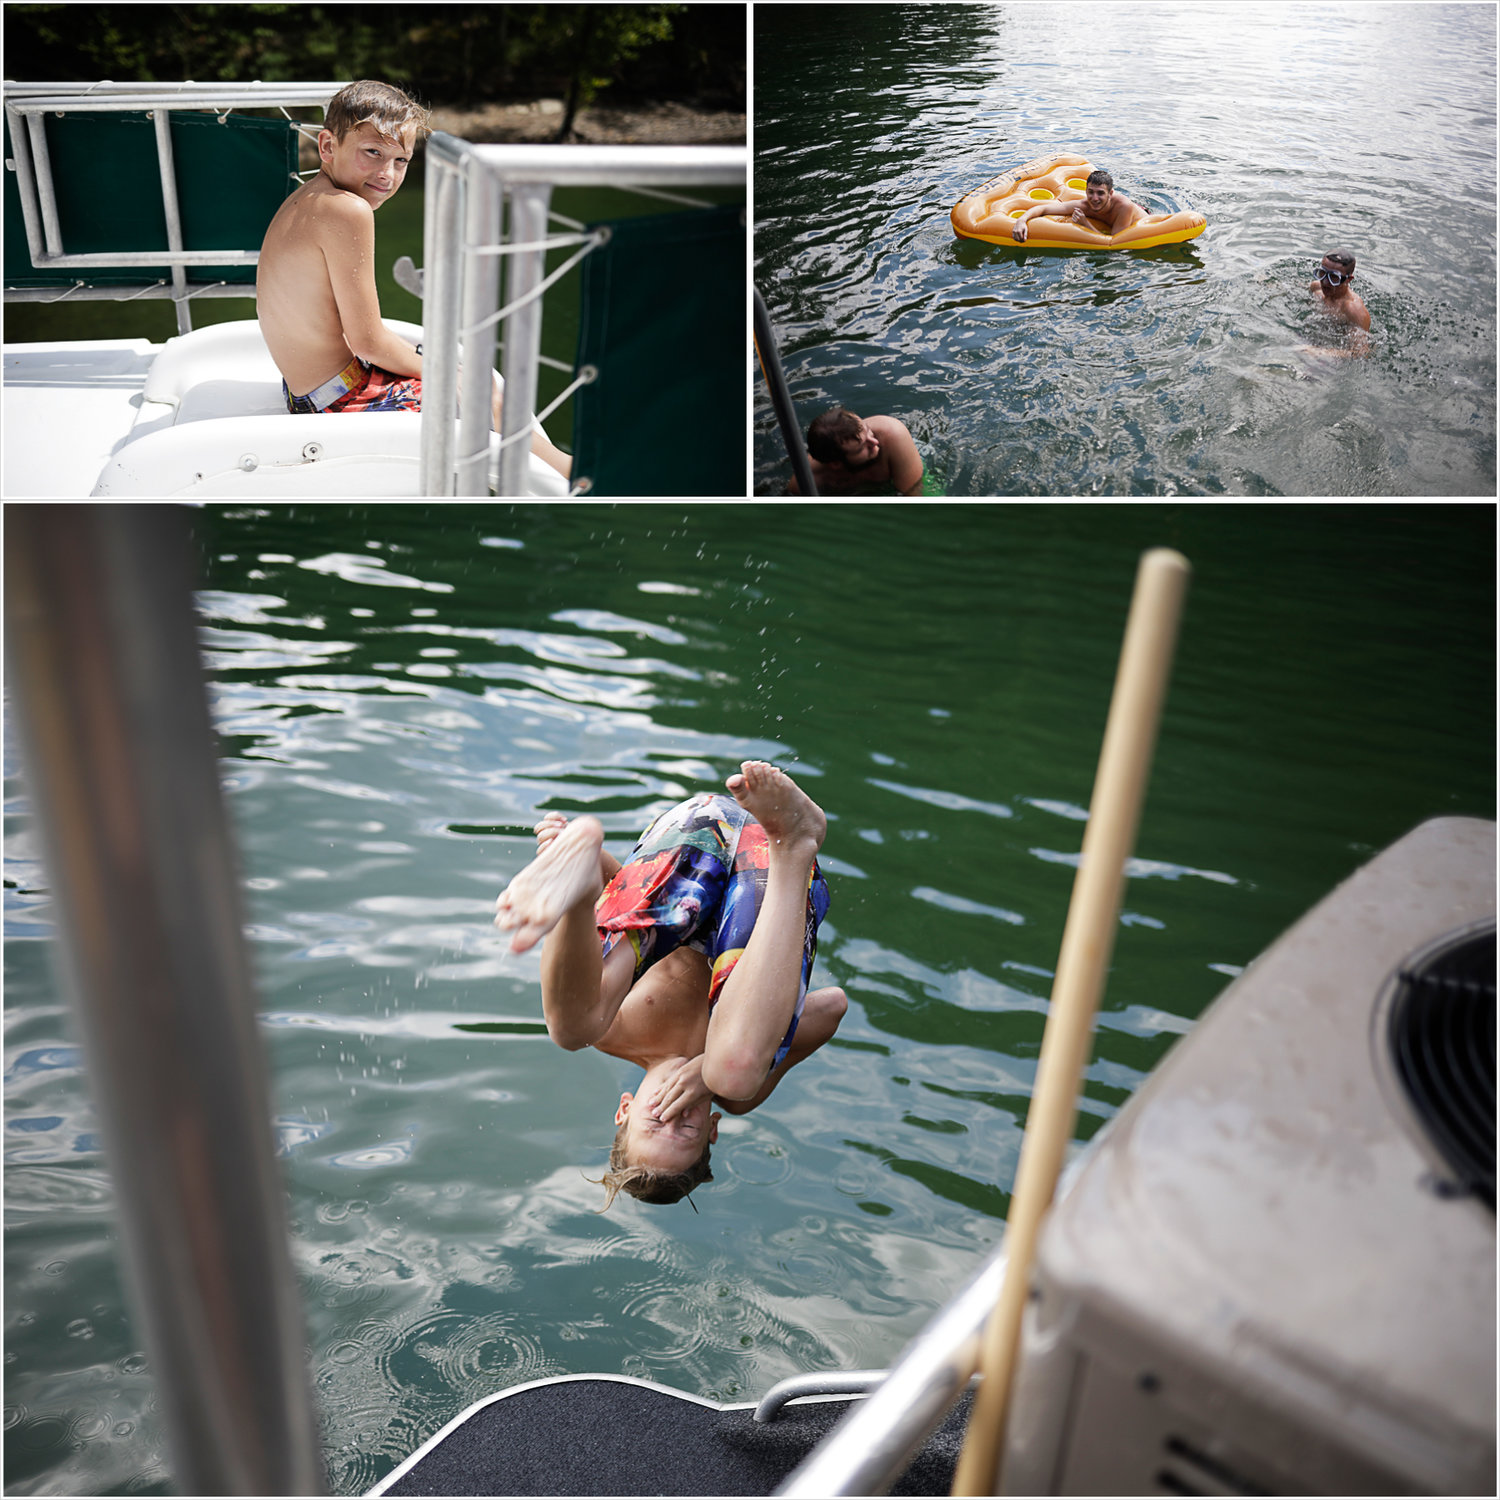 The kids jumping off of the houseboat | Our Dale Hallow House Boat Adventure | J.B. TOLS